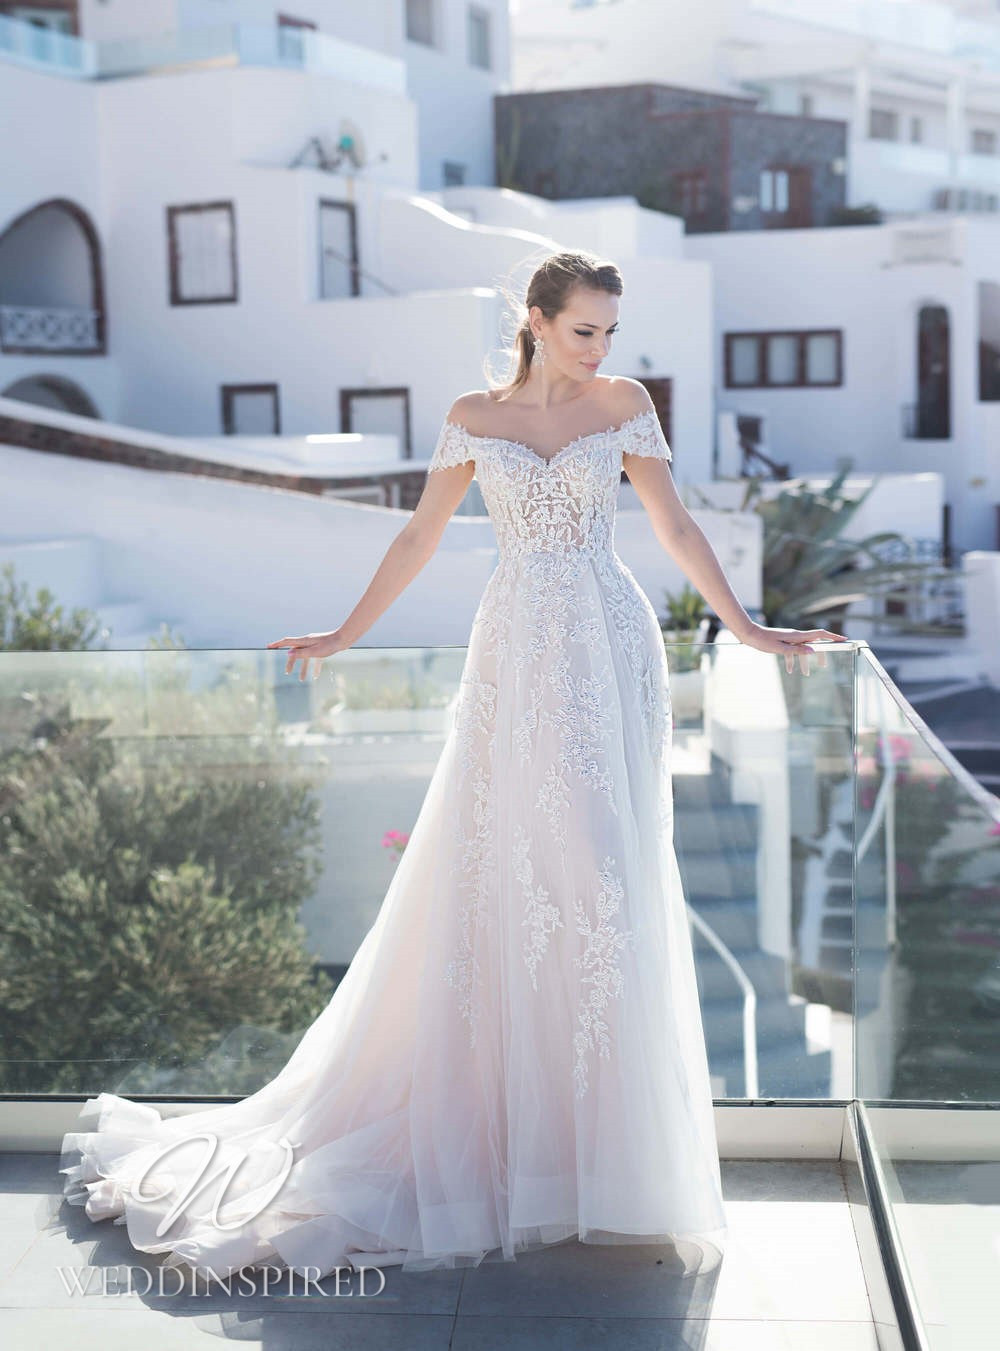 A Blunny 2021 lace off the shoulder A-line wedding dress